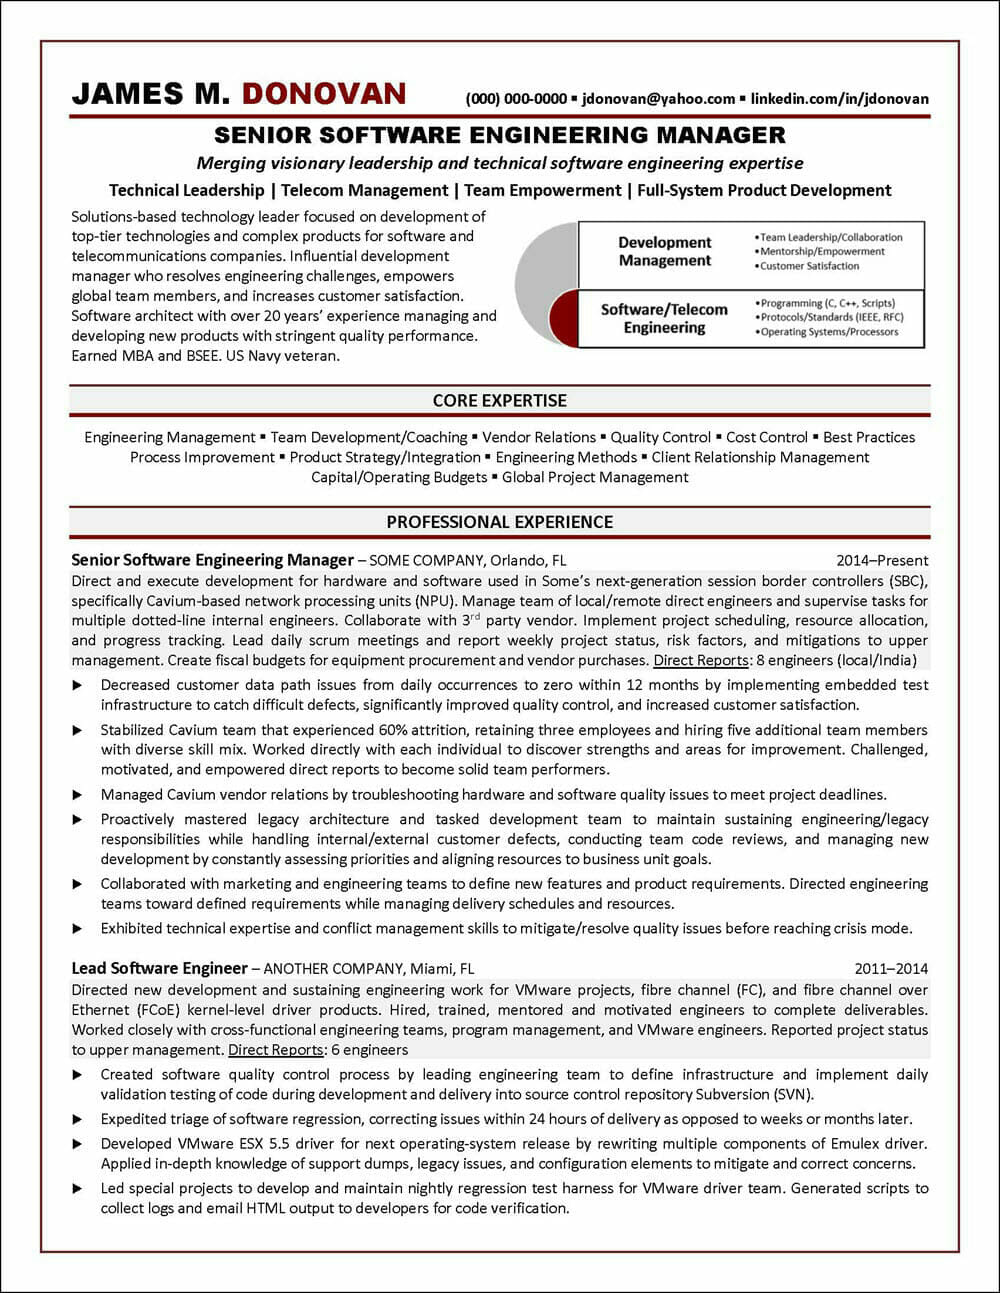 software engineer resume example distinctive career services of engineering manager Resume Example Of Software Engineer Resume